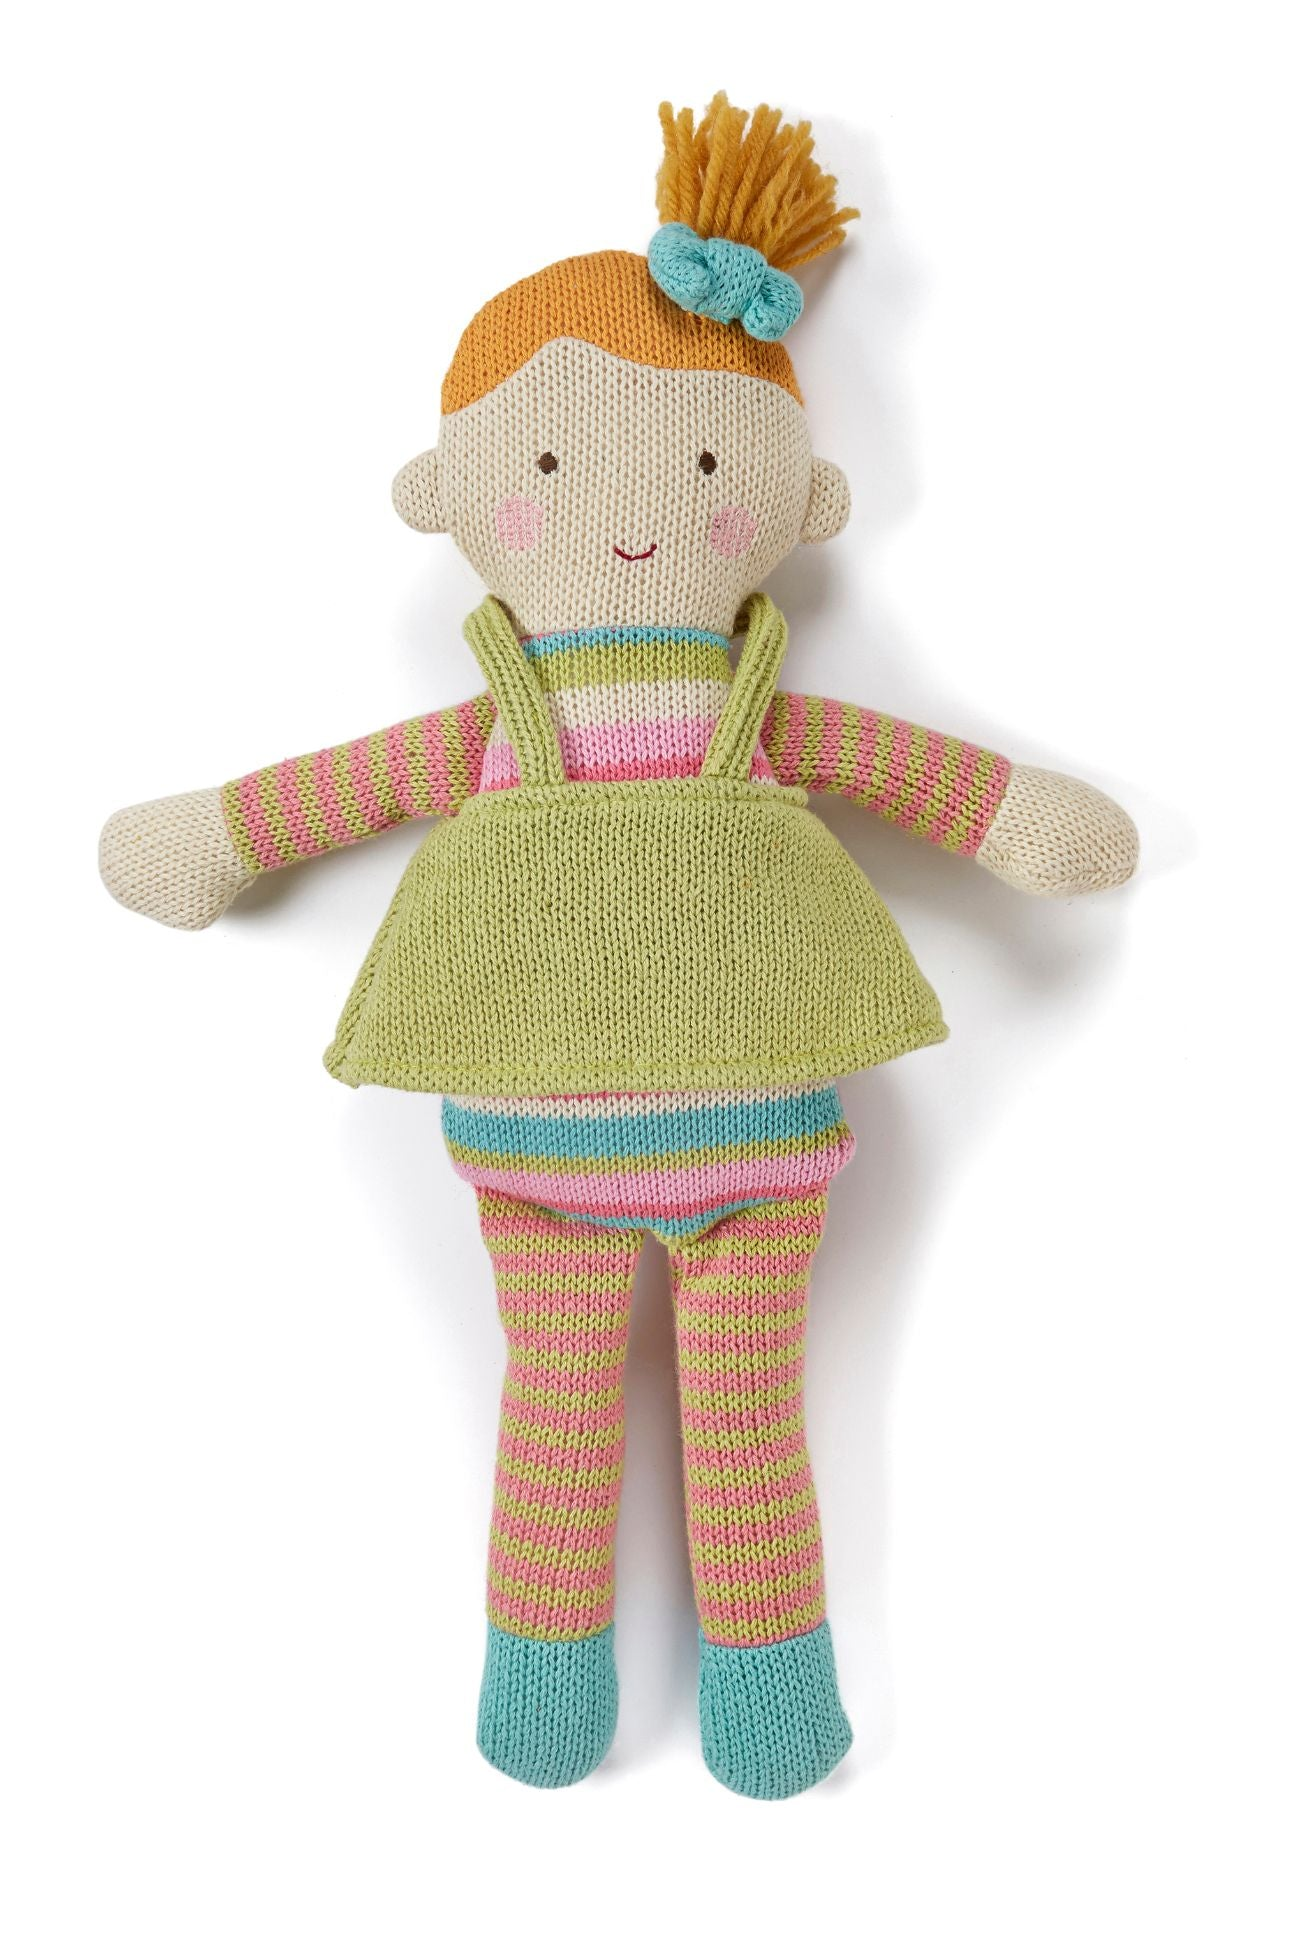 Matilda knitted doll